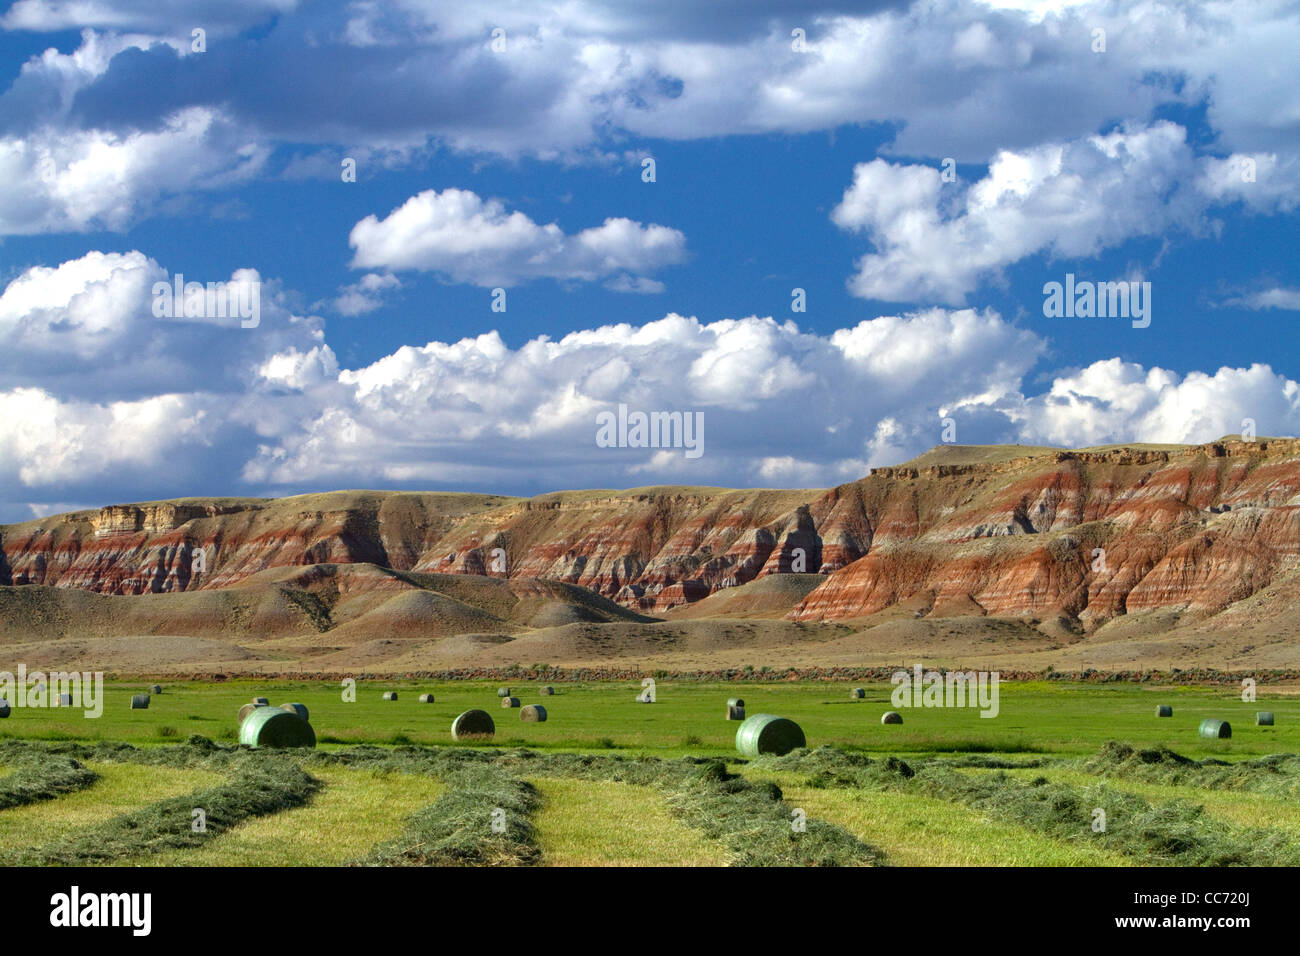 Red rock cliffs and newly harvested alfalfa hay near Dubois, Wyoming, USA. - Stock Image